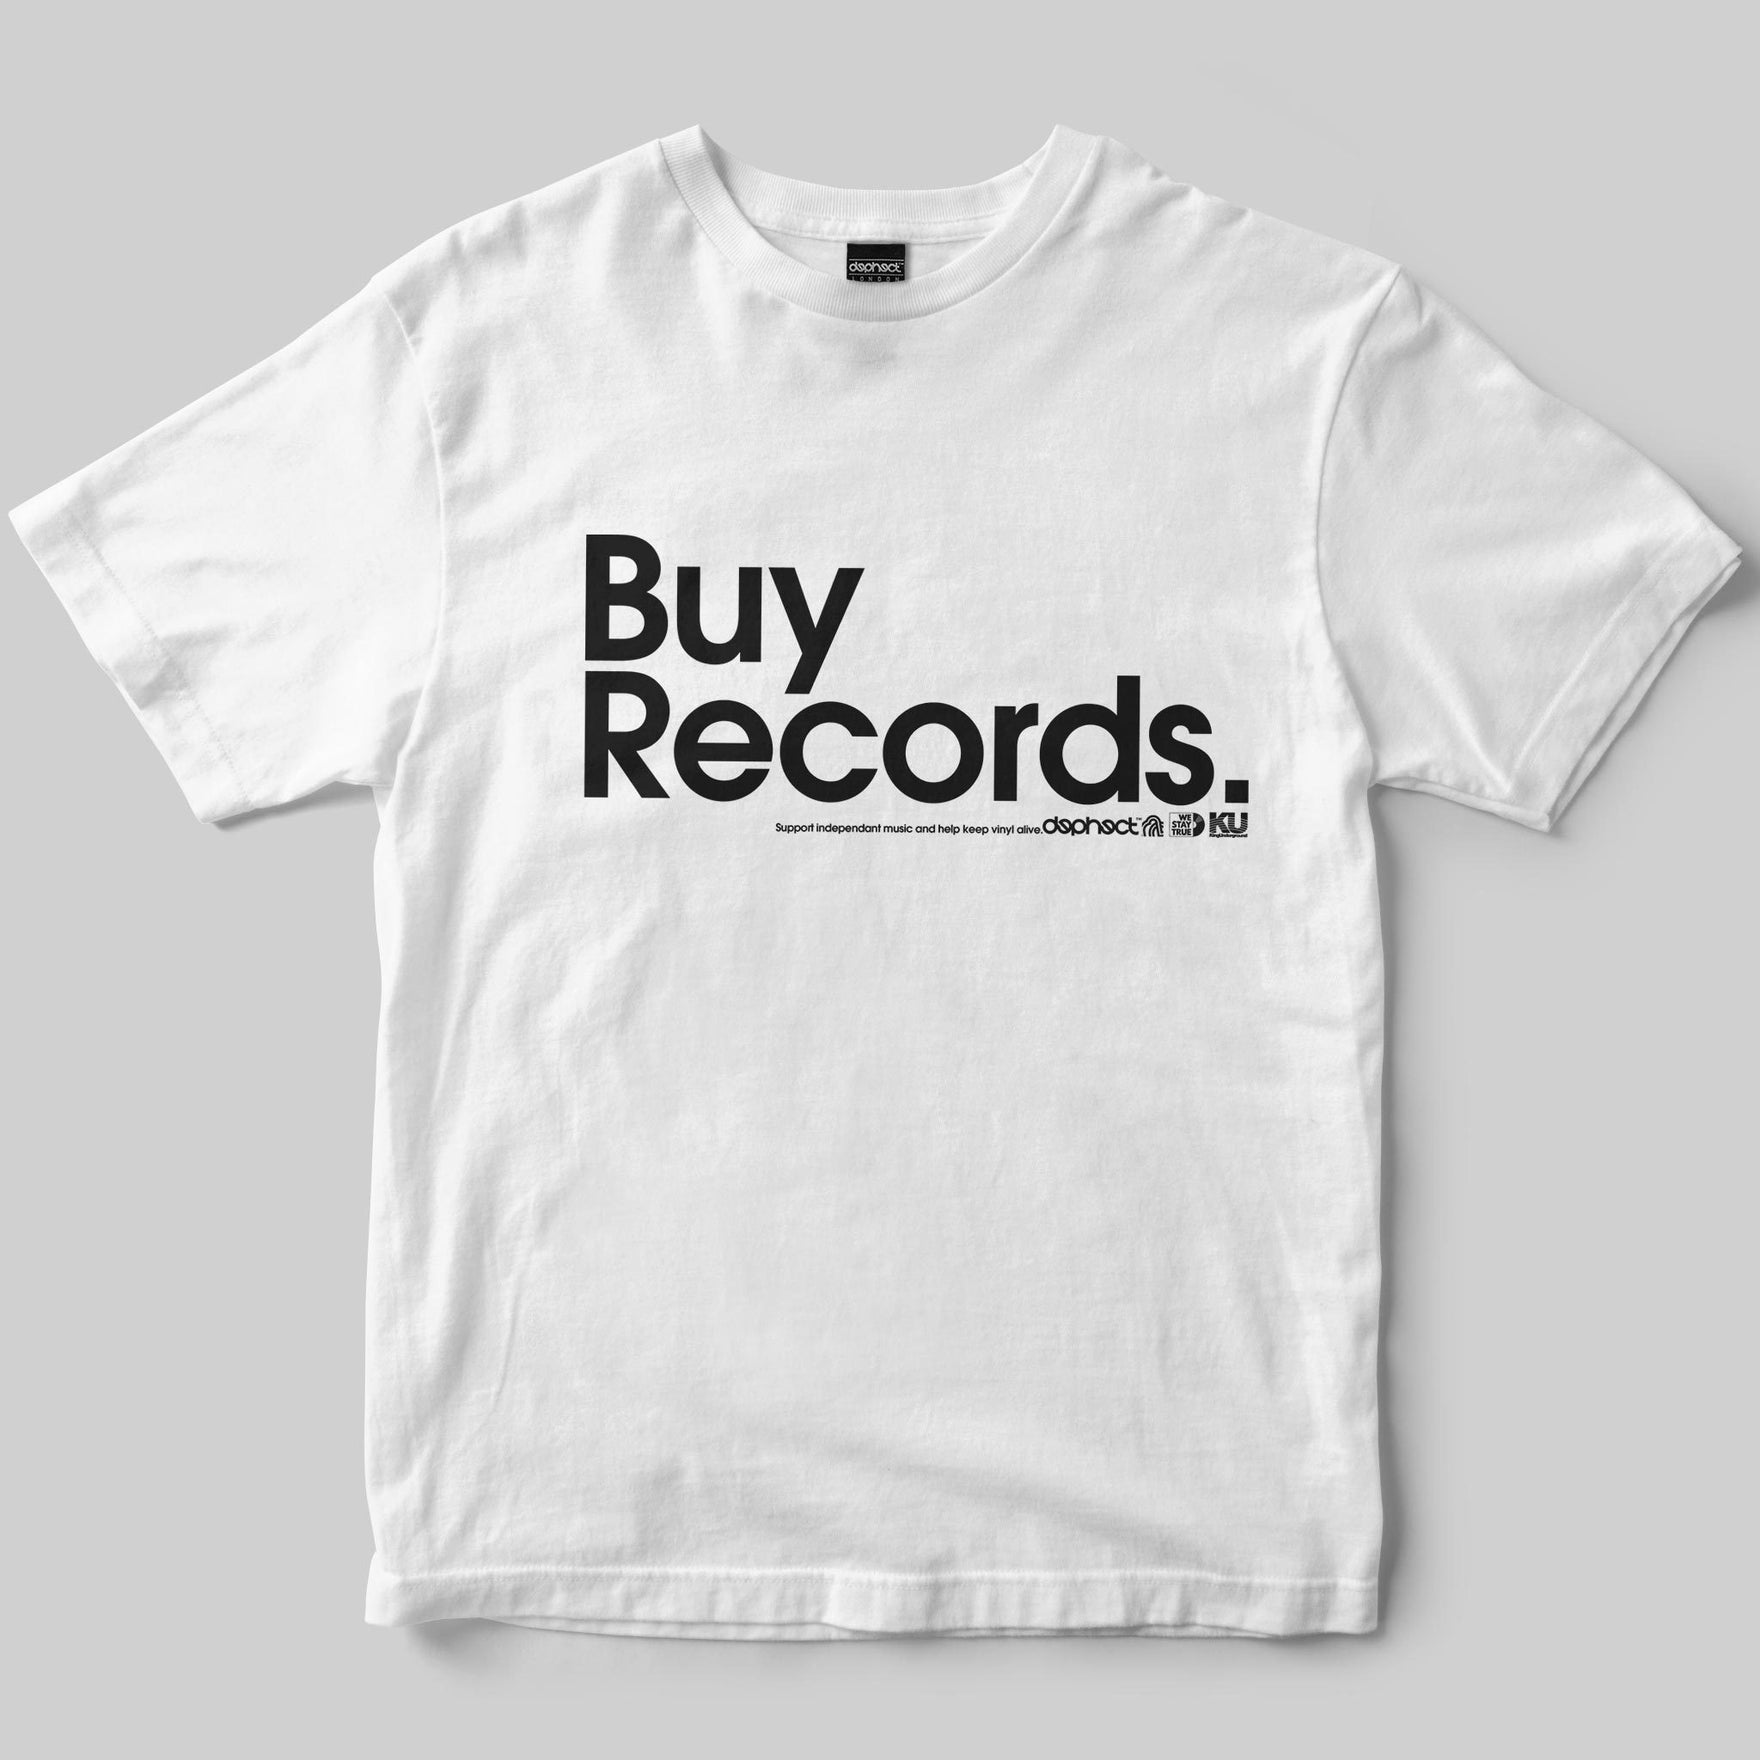 Buy Records T-Shirt / White / by Matt Drane